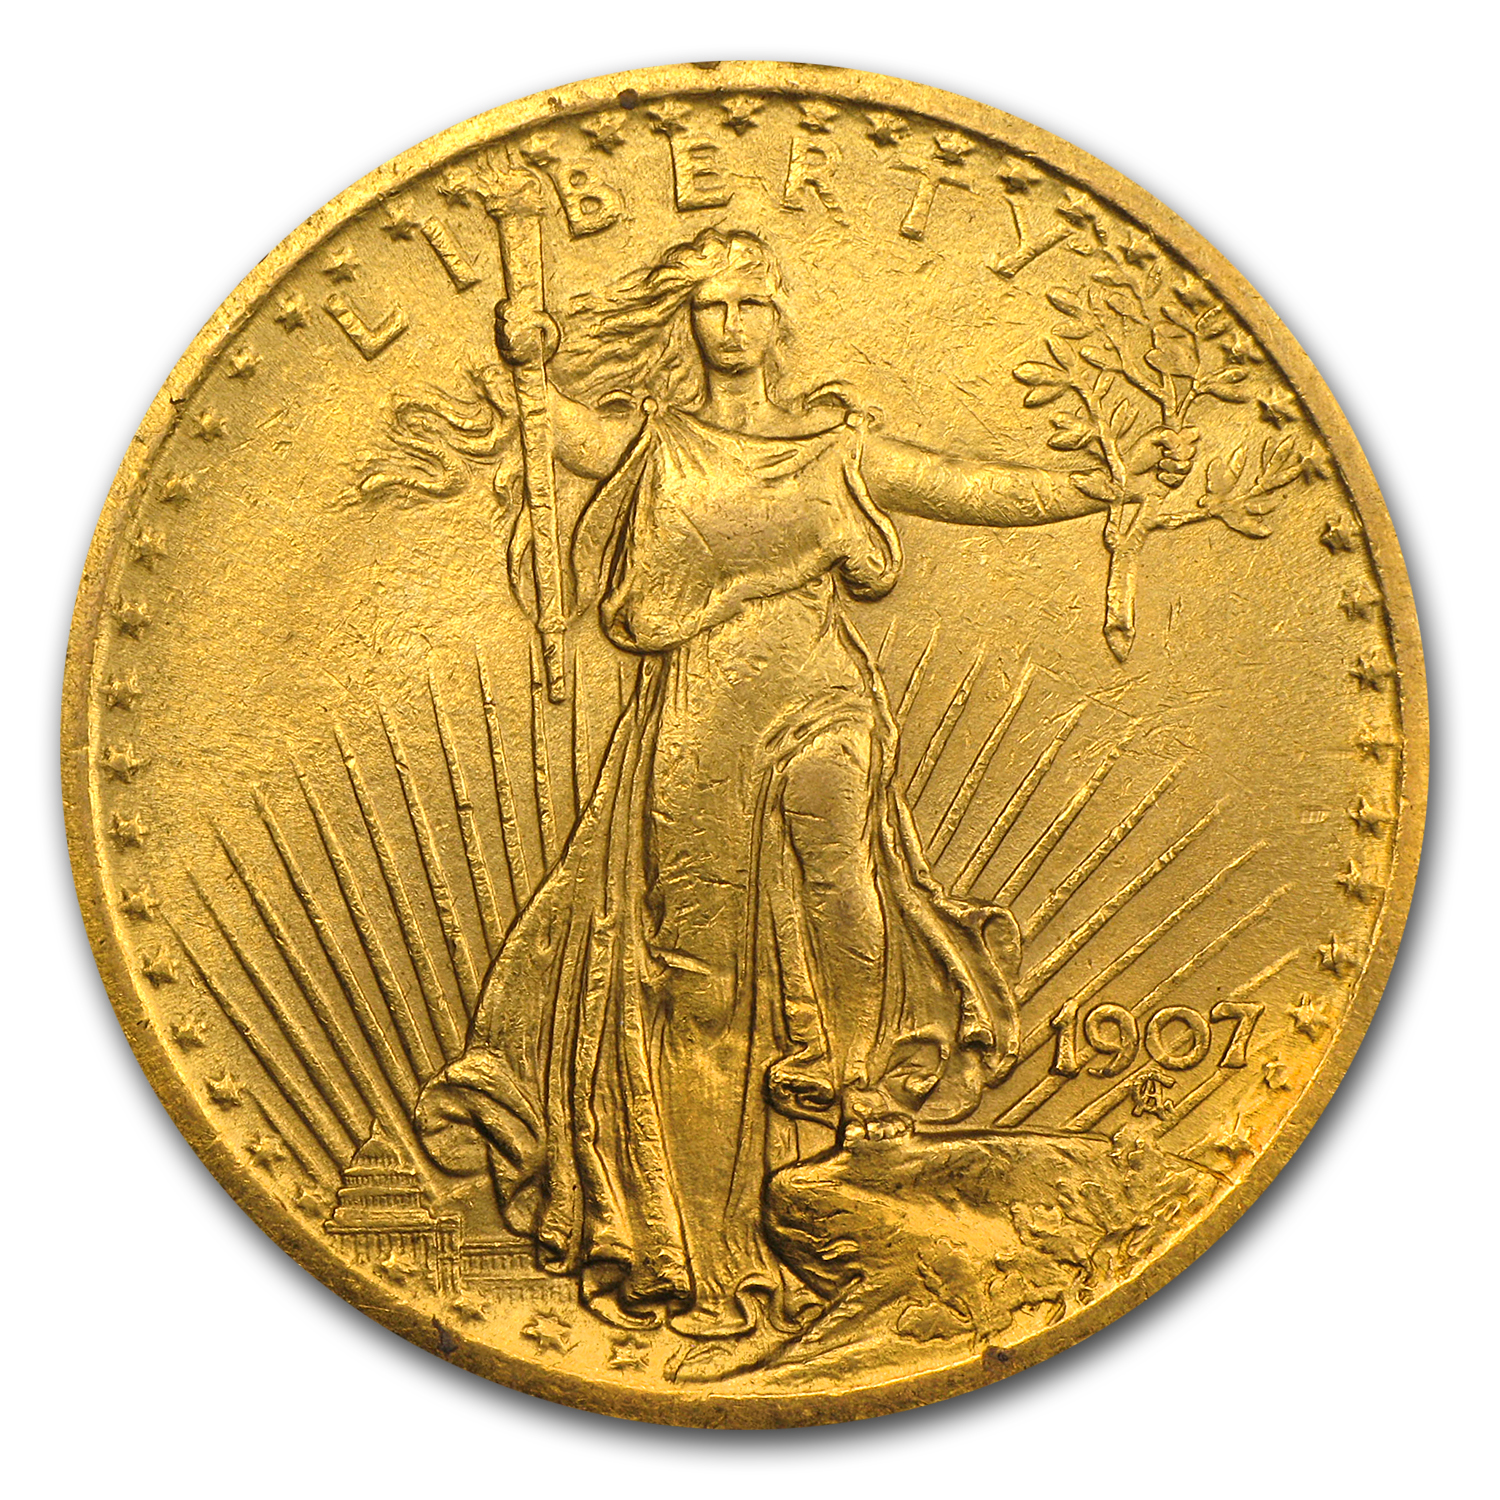 1907 $20 St. Gaudens Gold Double Eagle - Extra Fine